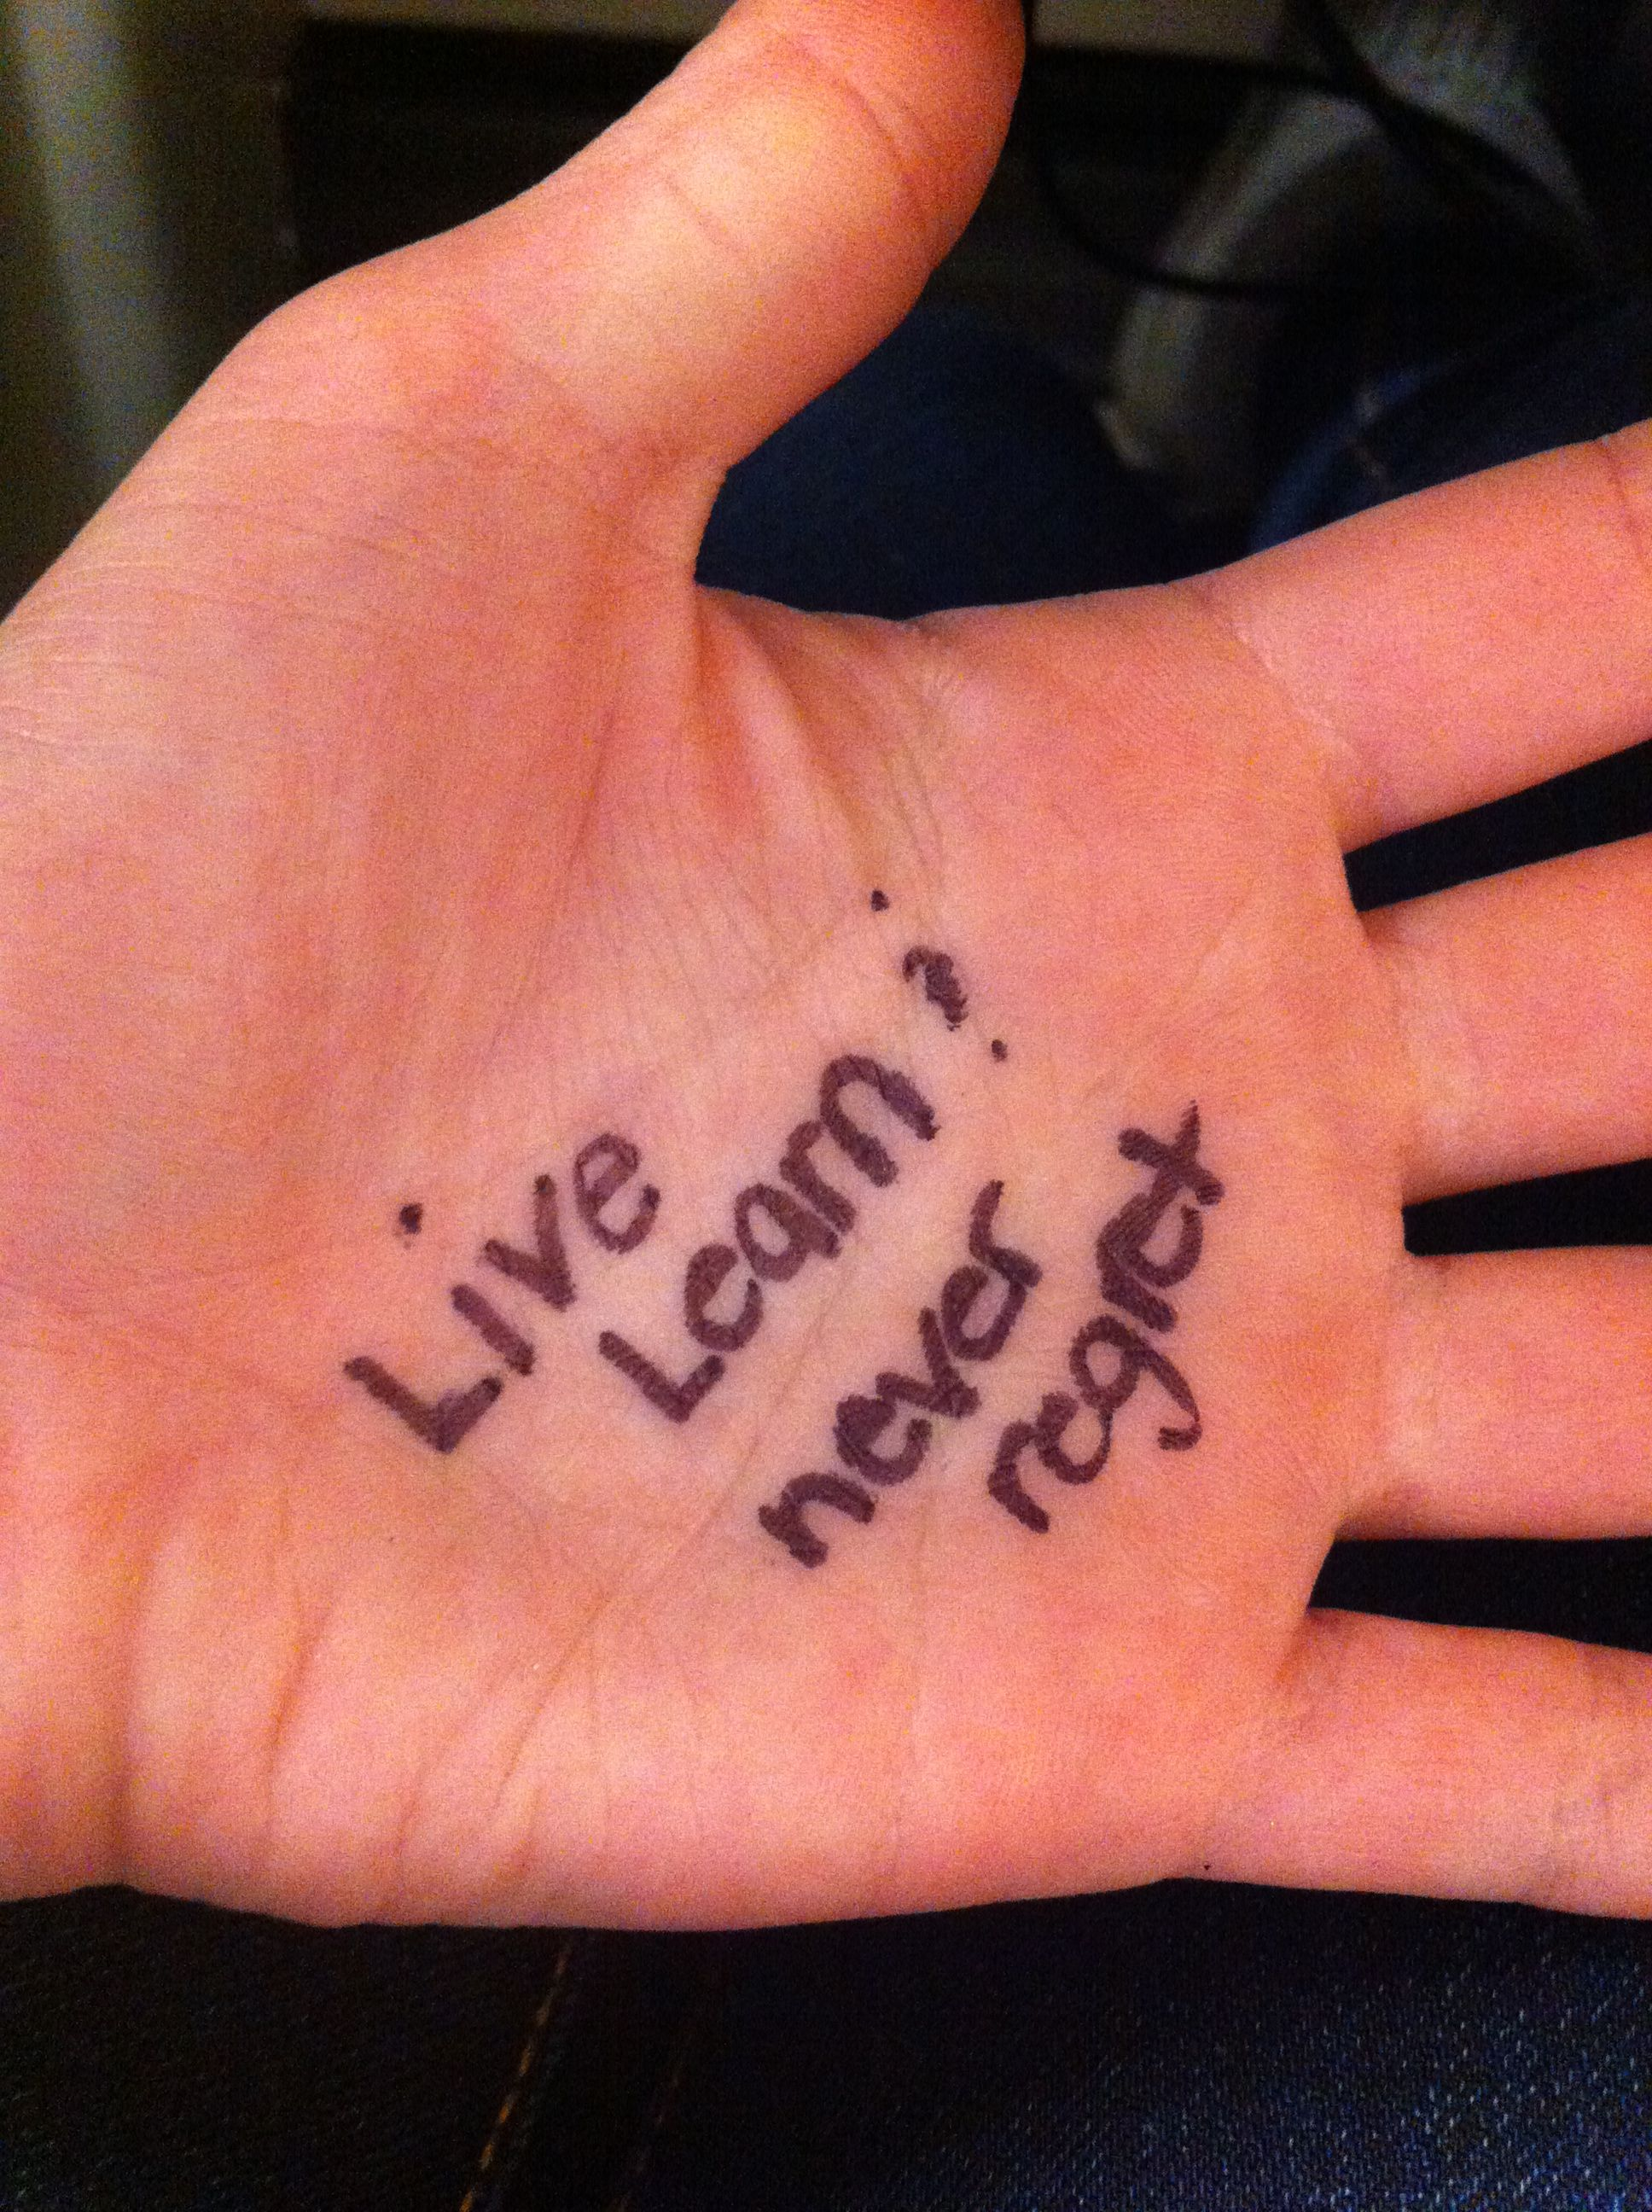 Live learn and never regret